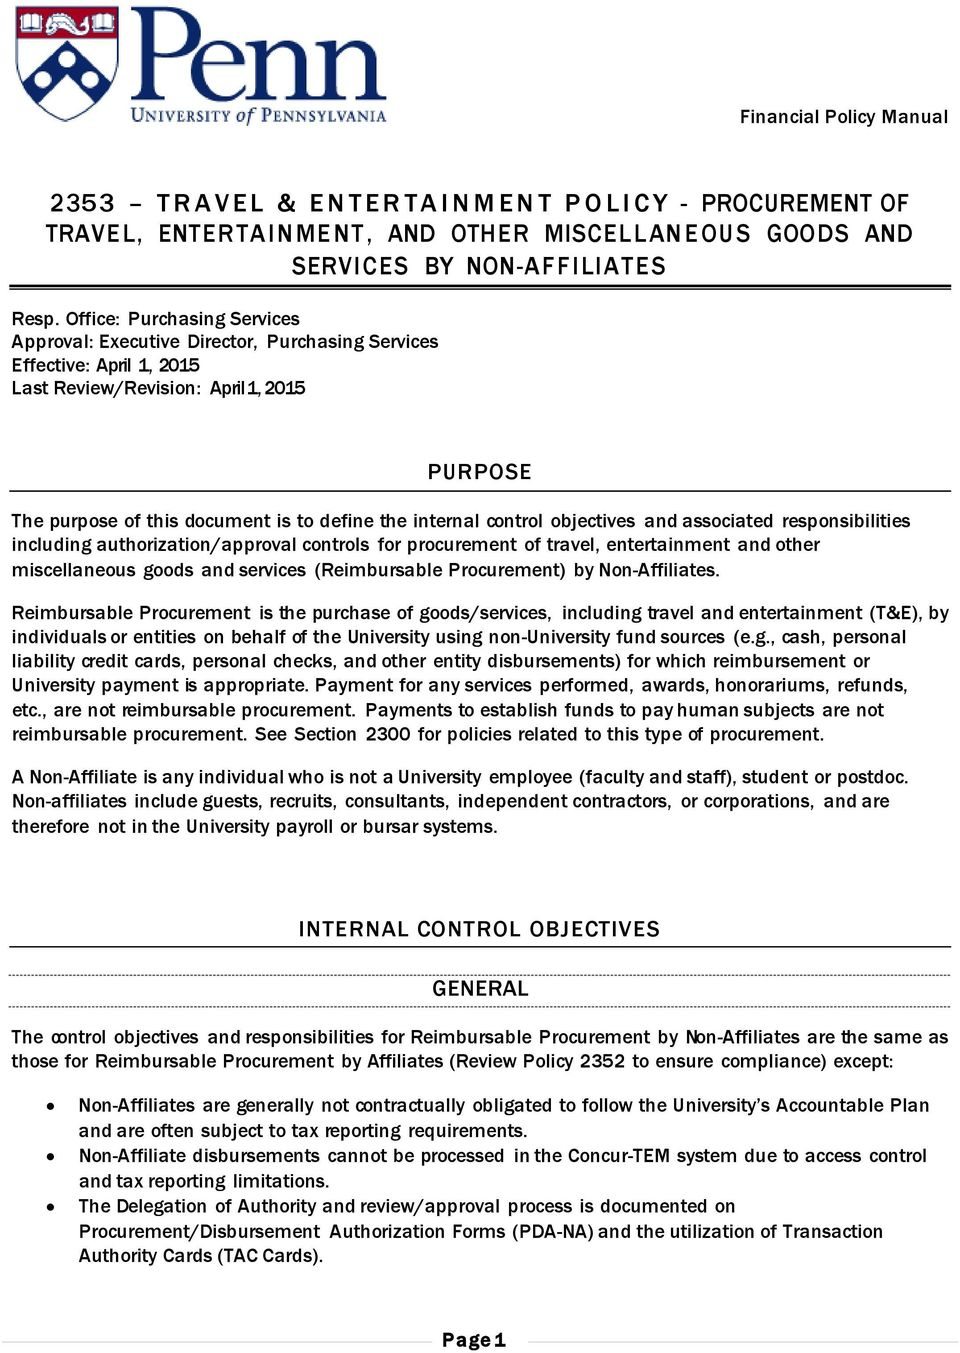 internal control objectives and associated responsibilities including authorization/approval controls for procurement of travel, entertainment and other miscellaneous goods and services (Reimbursable